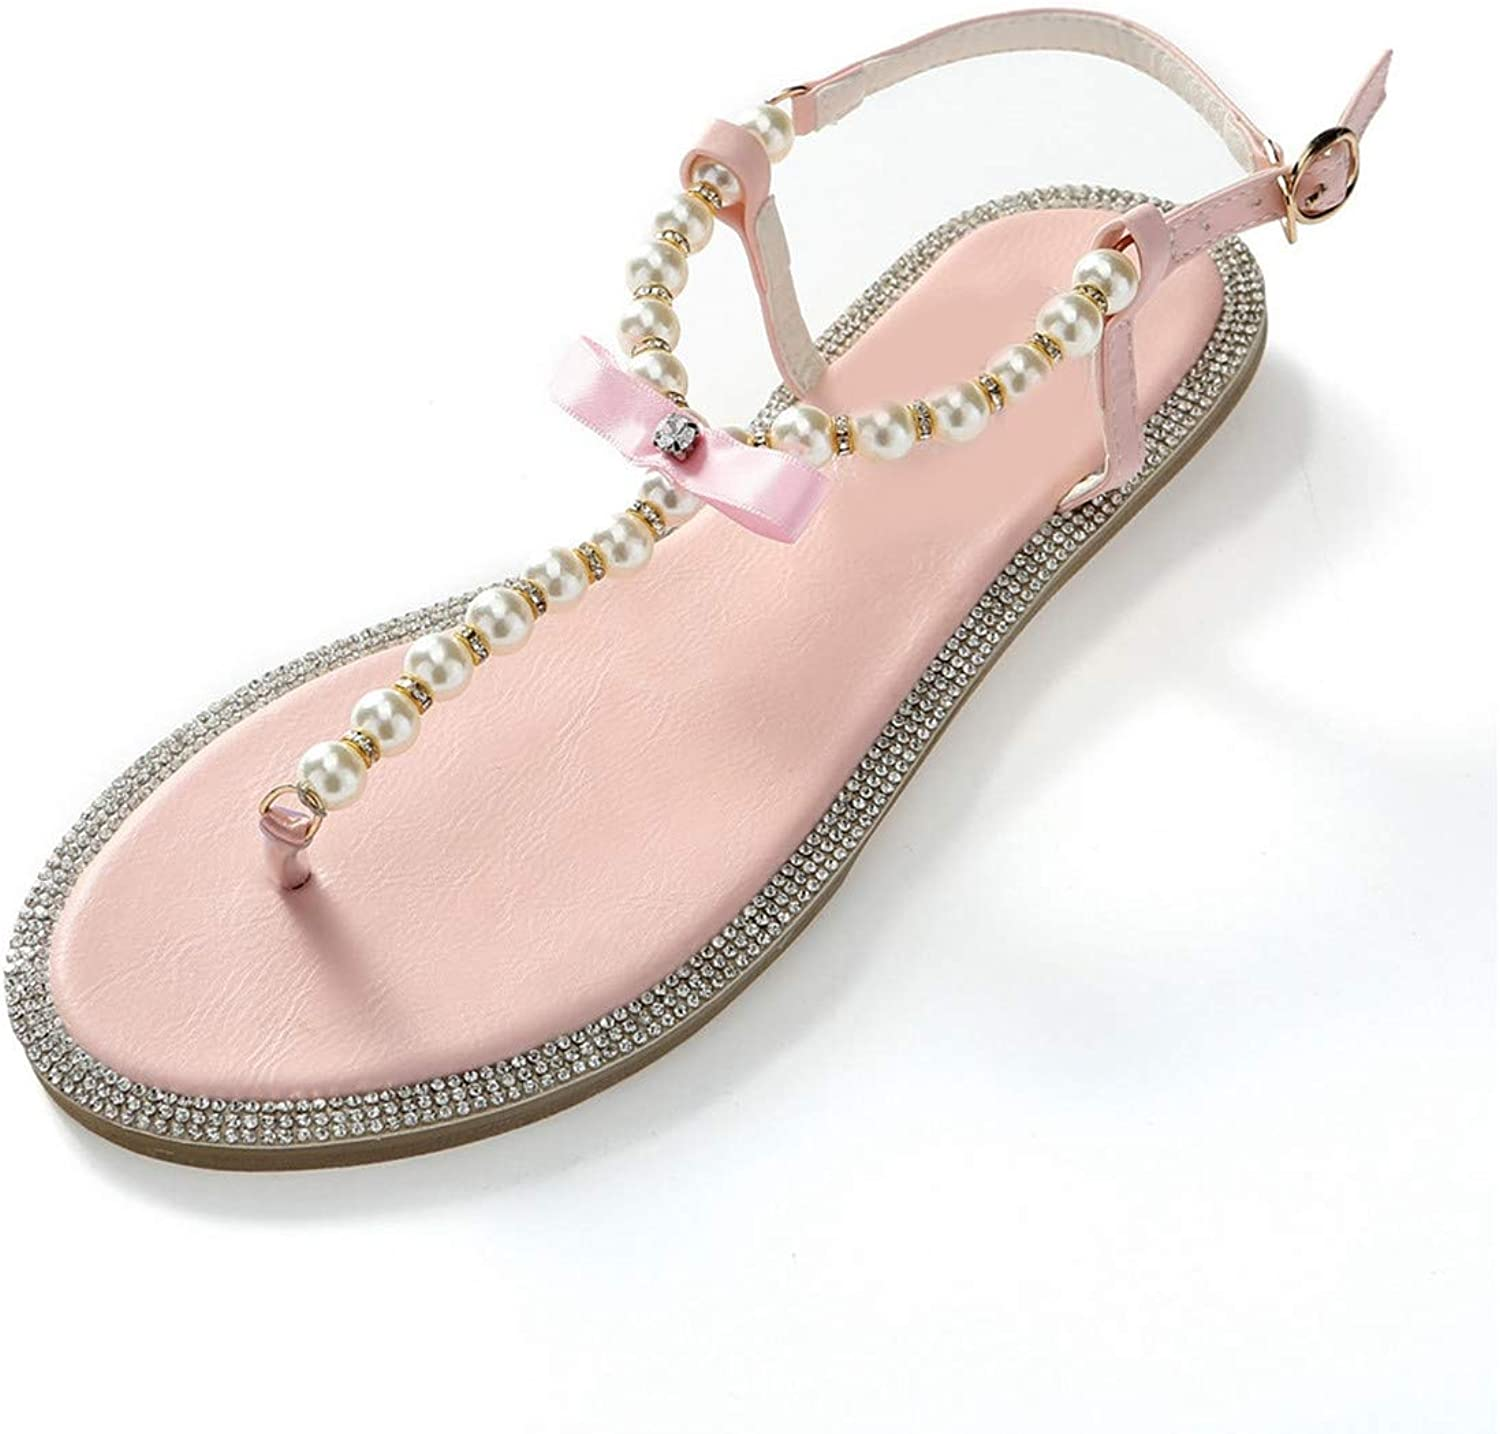 Women Sandals Summer Fashion shoes Girl's Bow Diamond Pearl Women Sandals Flat Sandals Woman shoes